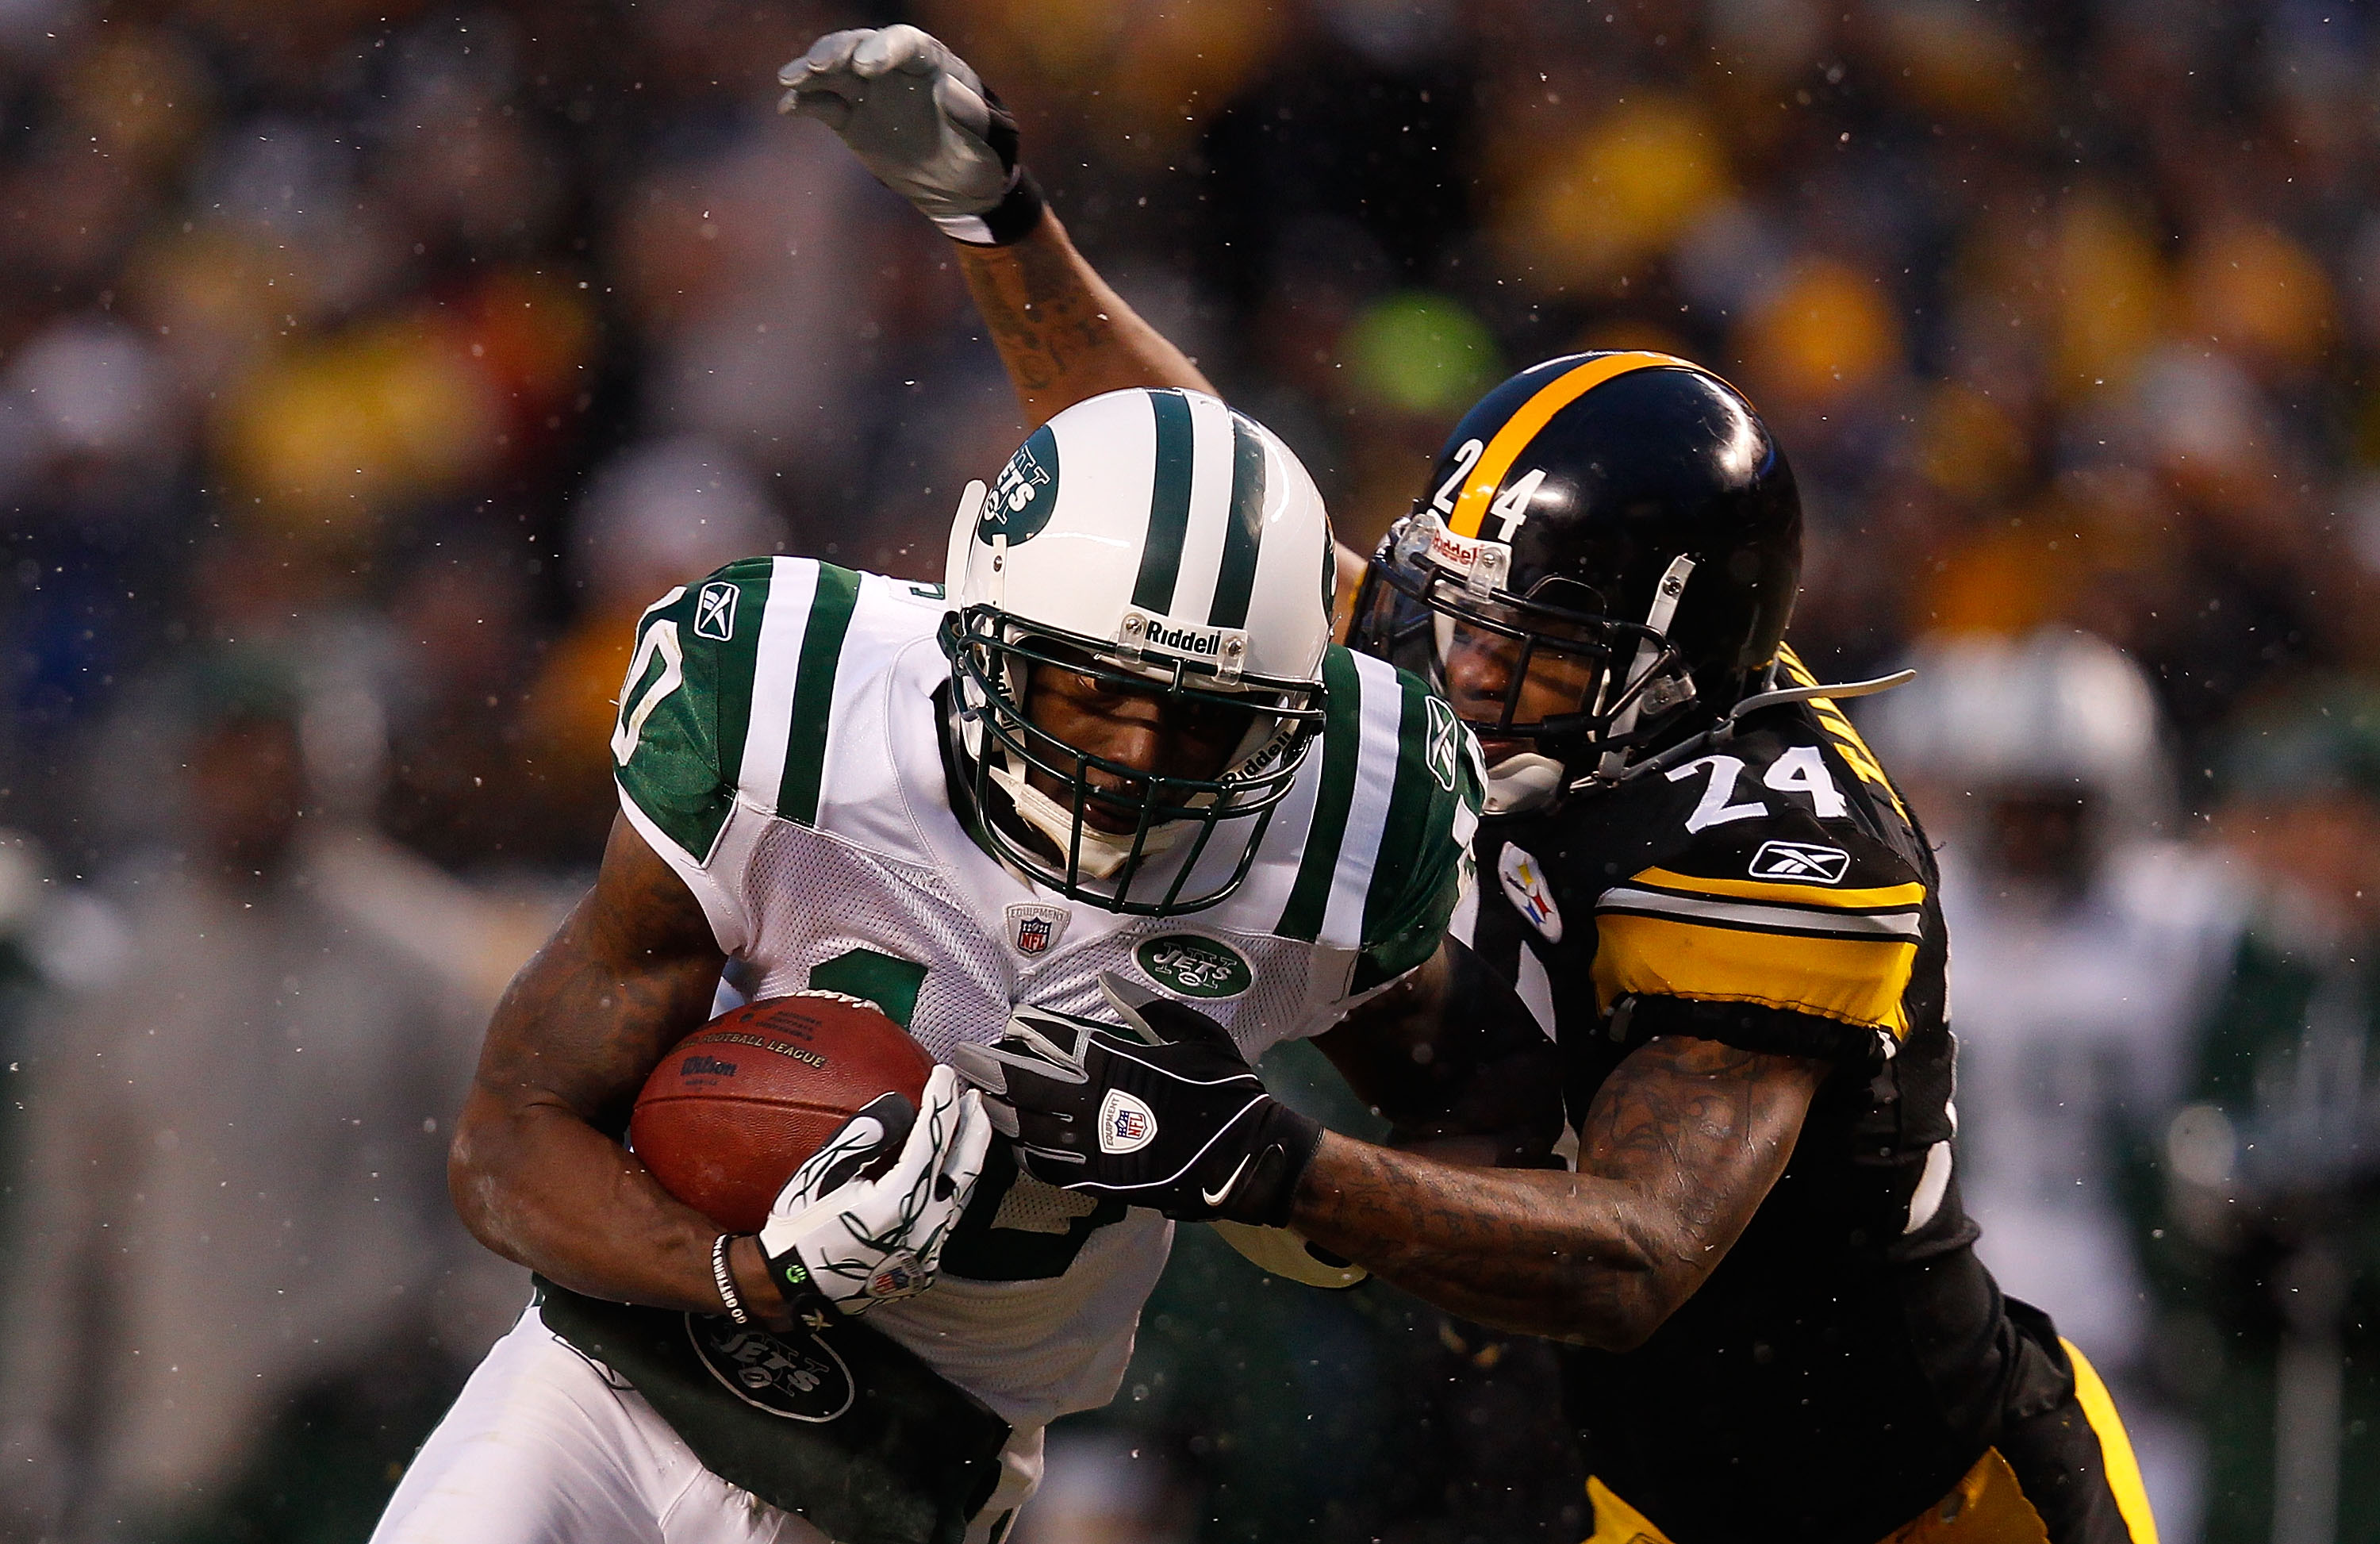 PITTSBURGH - DECEMBER 19:  Santonio Holmes #10 of the New York Jets makes a catch in front of Ike Taylor #24 of the Pittsburgh Steelers during the game on December 19, 2010 at Heinz Field in Pittsburgh, Pennsylvania.  (Photo by Jared Wickerham/Getty Image